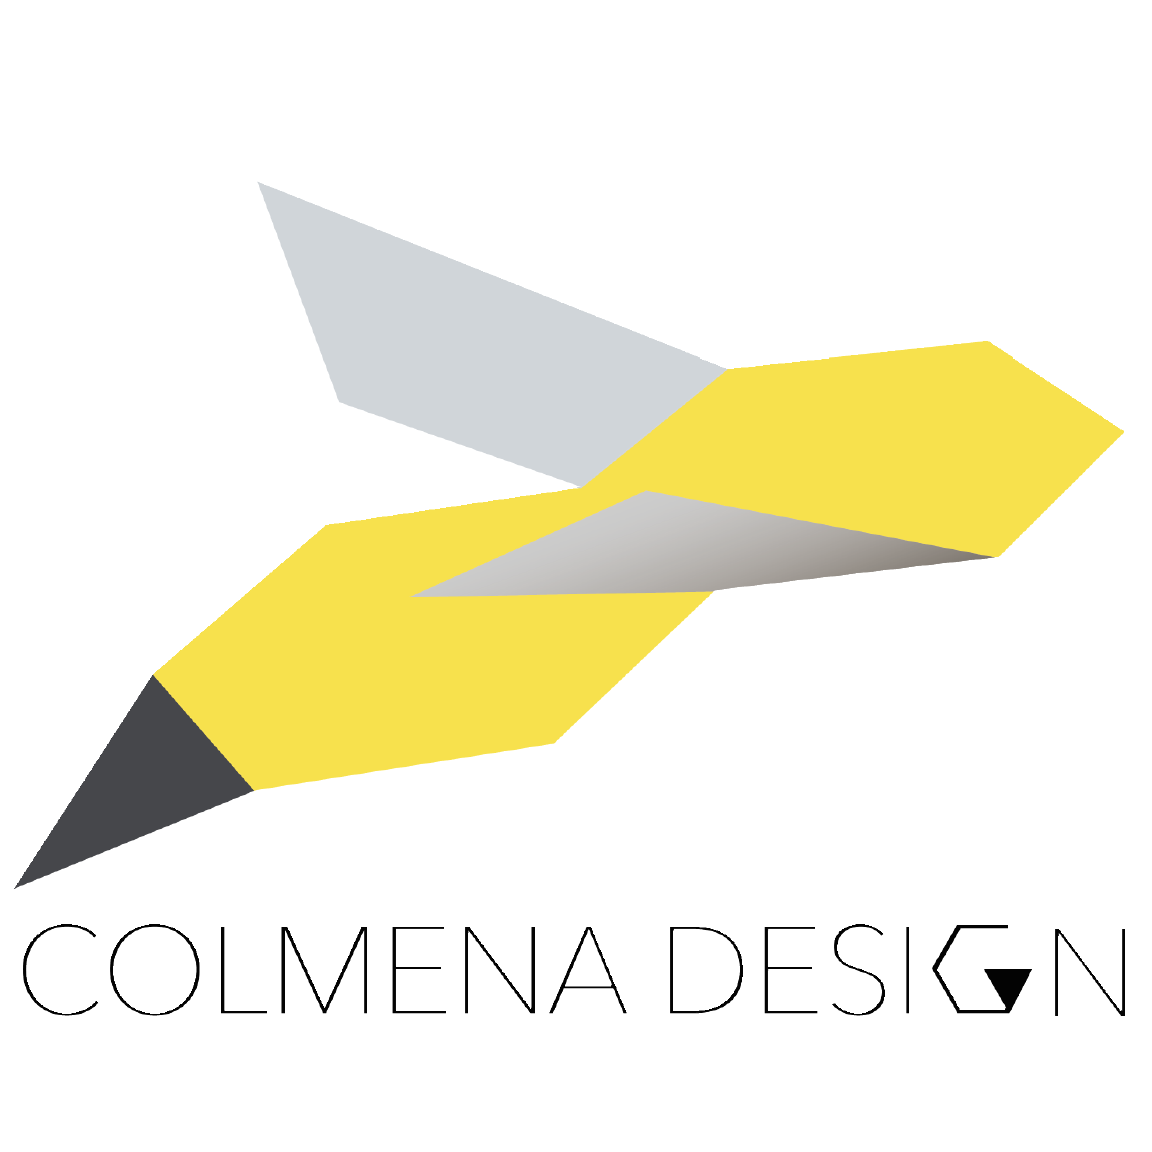 Colmena design on twitter happy holidays from the colmena team enjoying the cold weather good company and seasons greetings colmenadesign gamesforadifference httpst6svdsbexib kristyandbryce Gallery